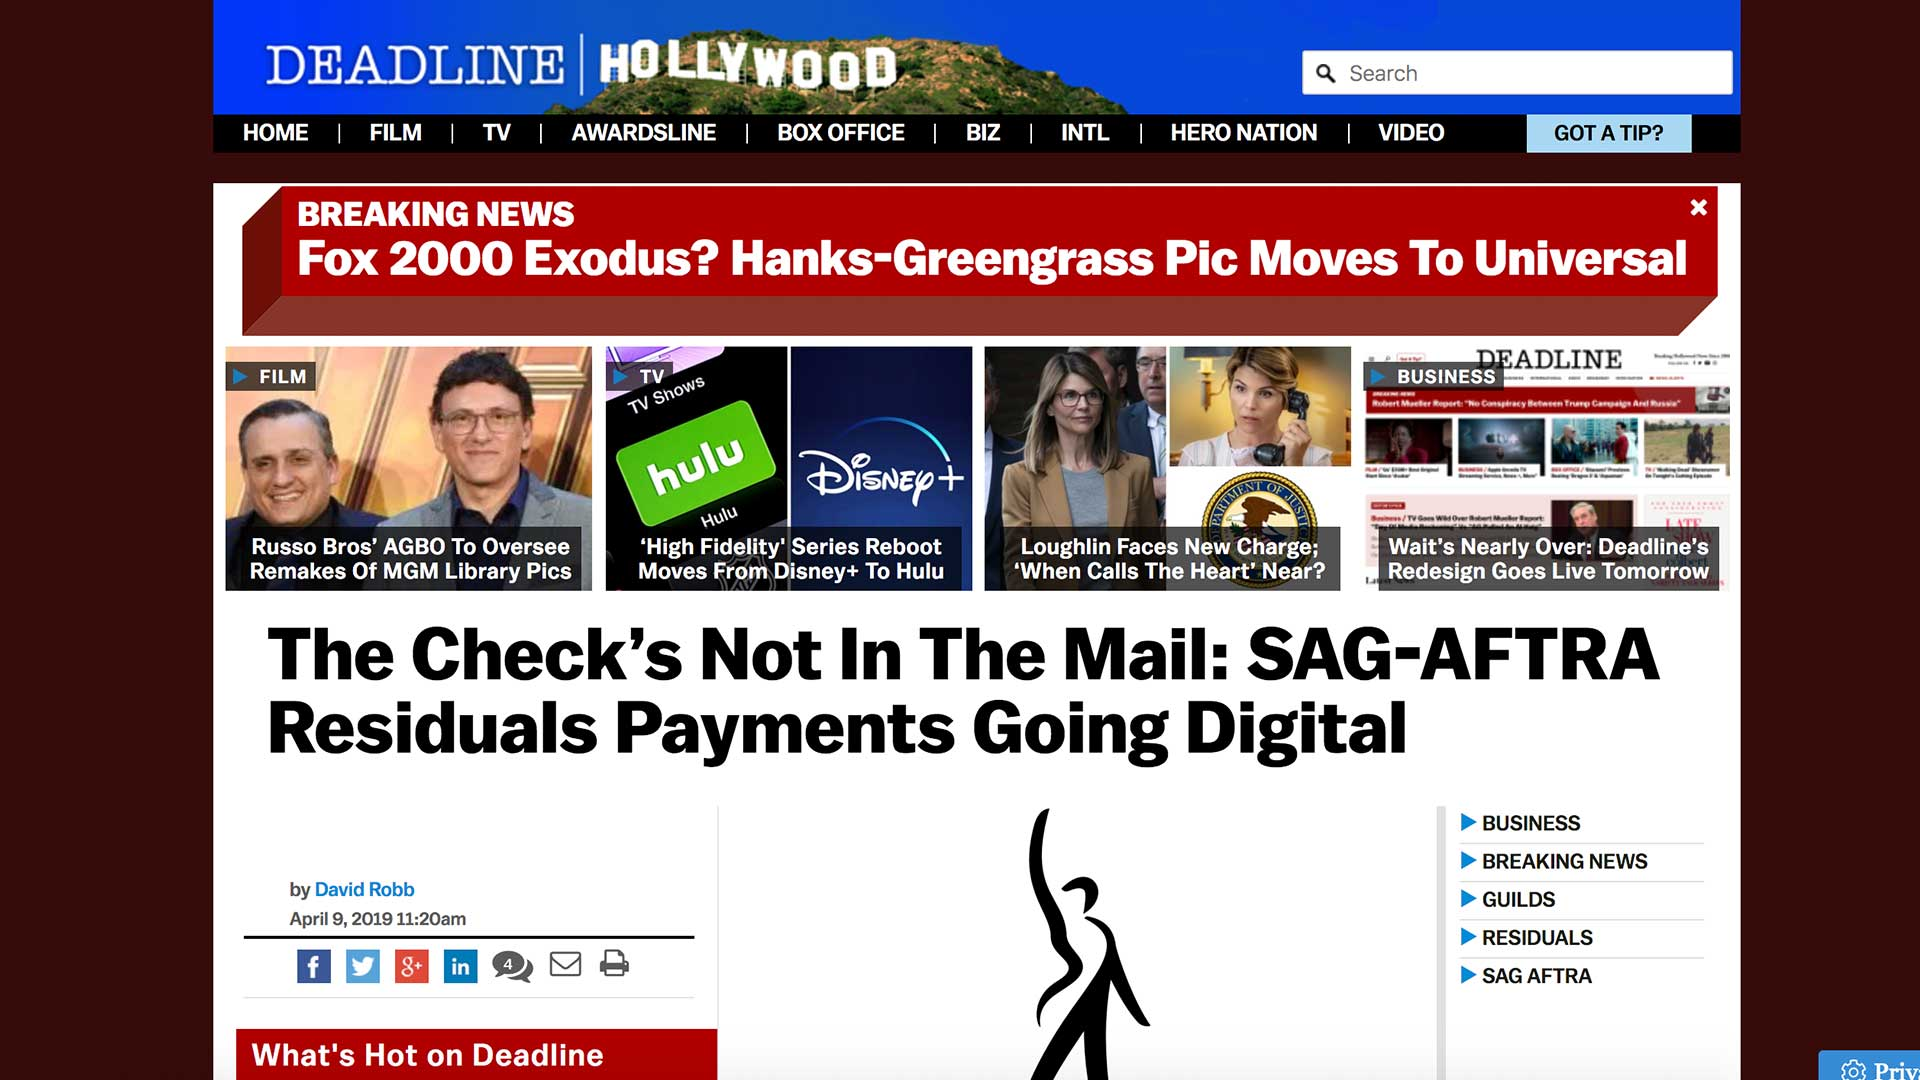 Fairness Rocks News The Check's Not In The Mail: SAG-AFTRA Residuals Payments Going Digital